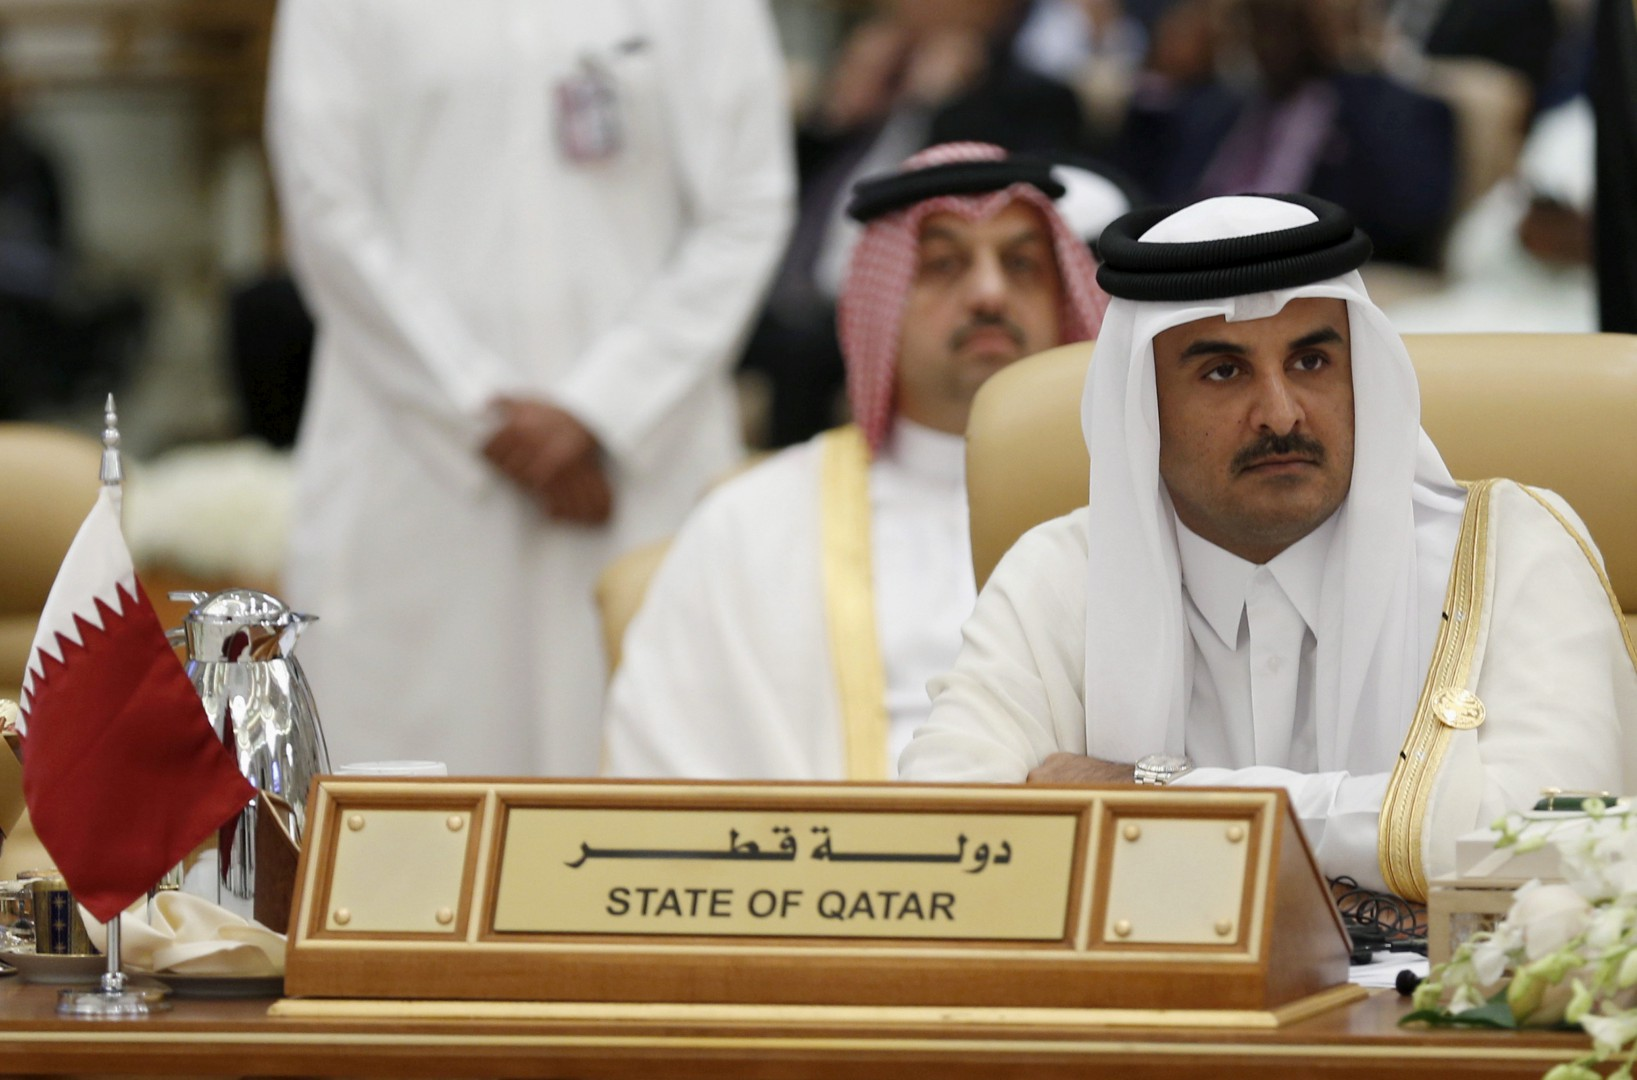 FILE PHOTO - The Emir of Qatar Tamim bin Hamad al-Thani attends the final session of the South American-Arab Countries summit, in Riyadh November 11, 2015. REUTERS/Faisal Al Nasser/File Photo